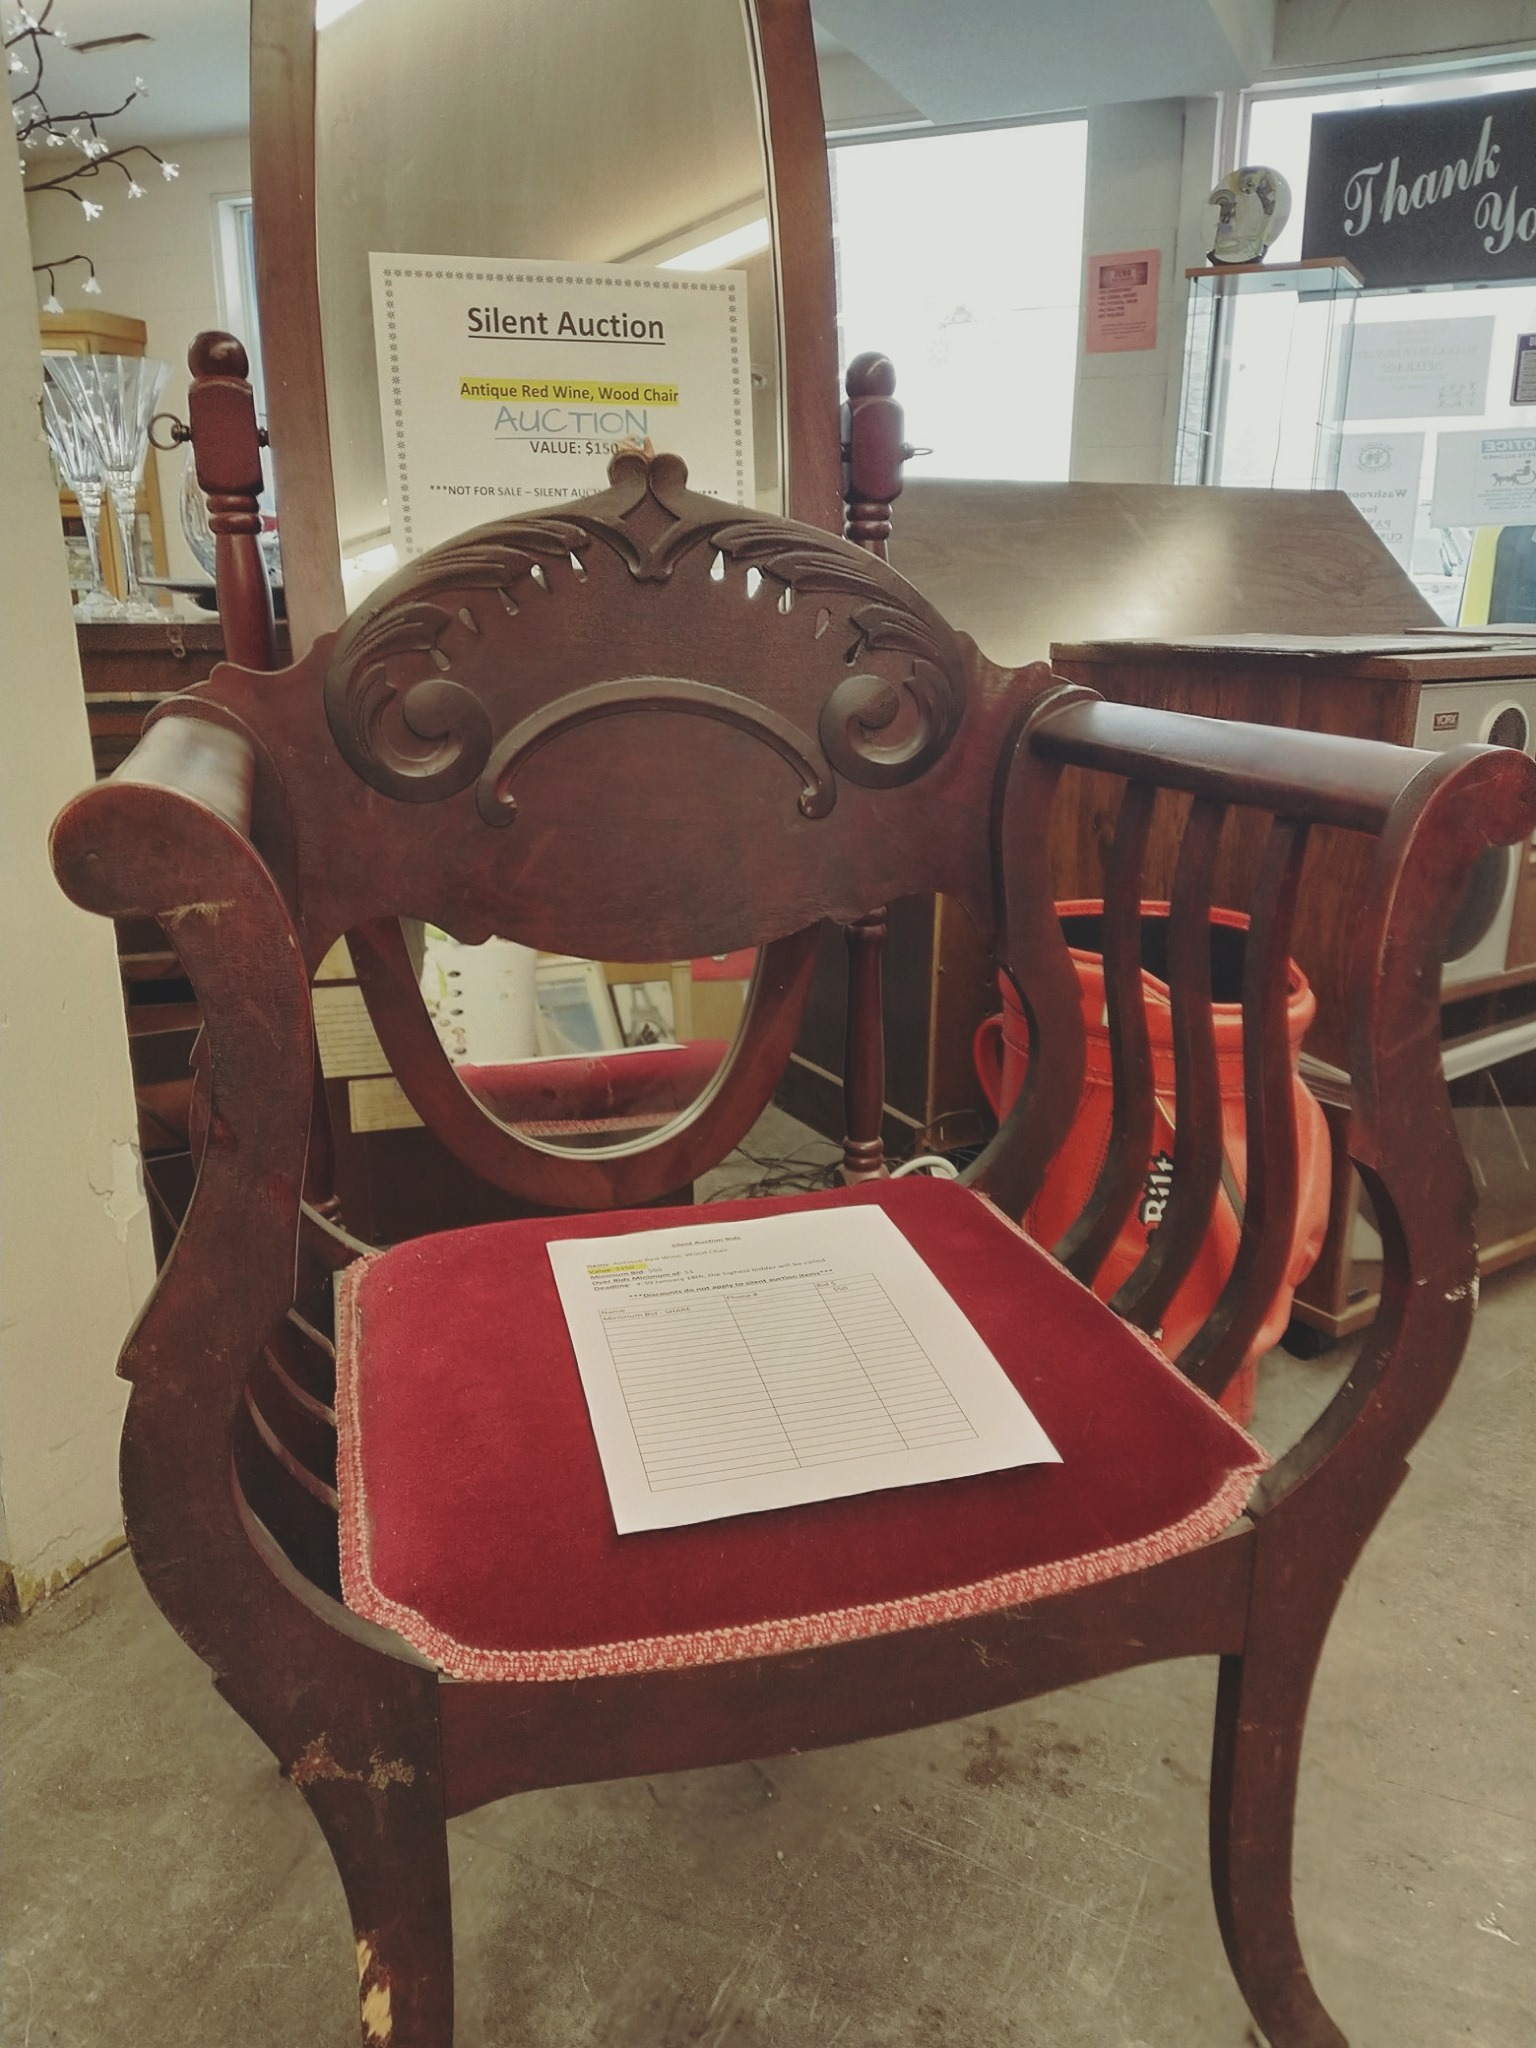 Antique Red Wine, Wood Chair